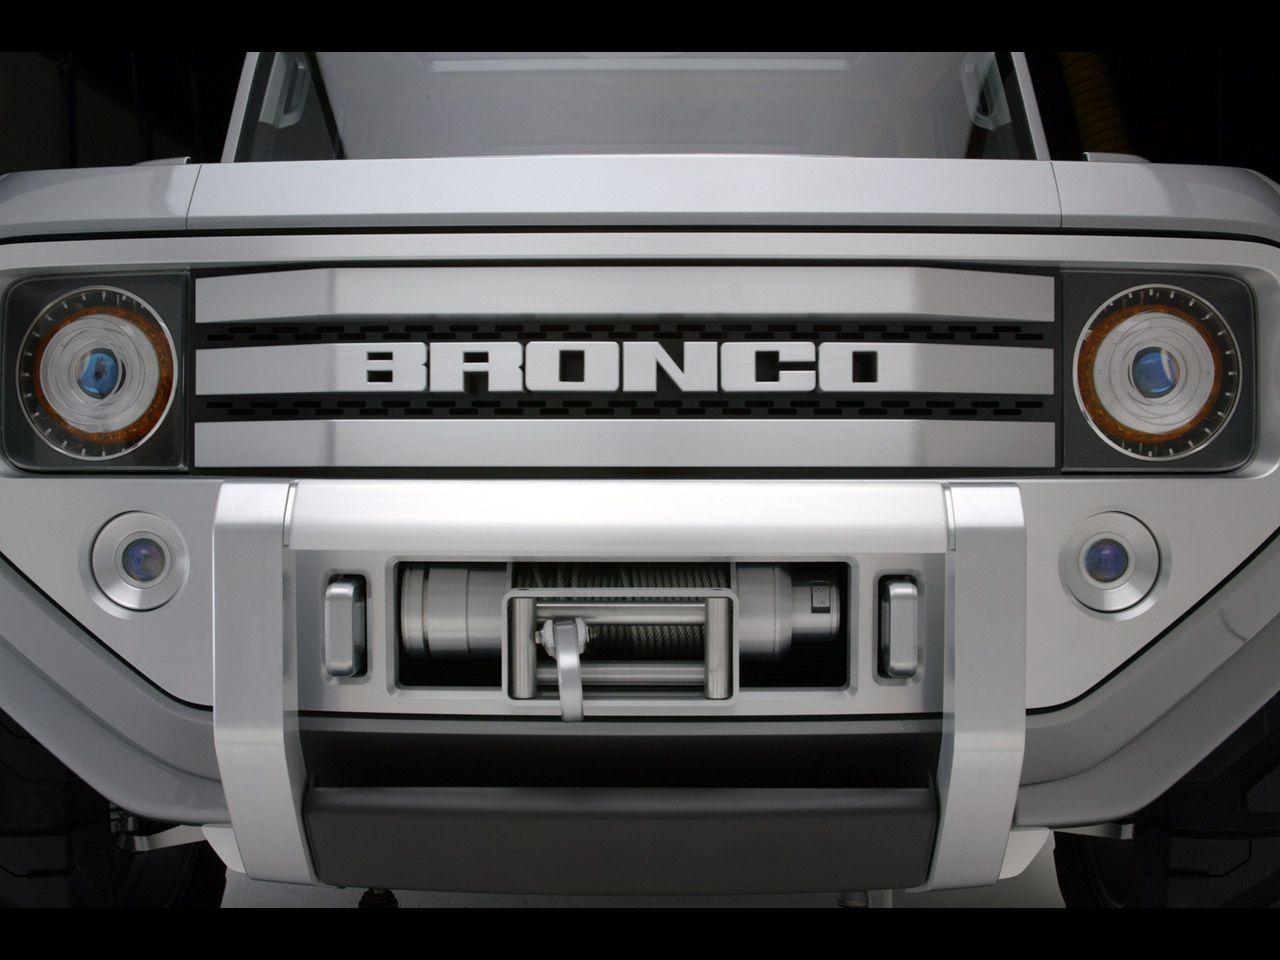 2004 Ford Bronco Concept - Grille - 1280x960 Wallpaper